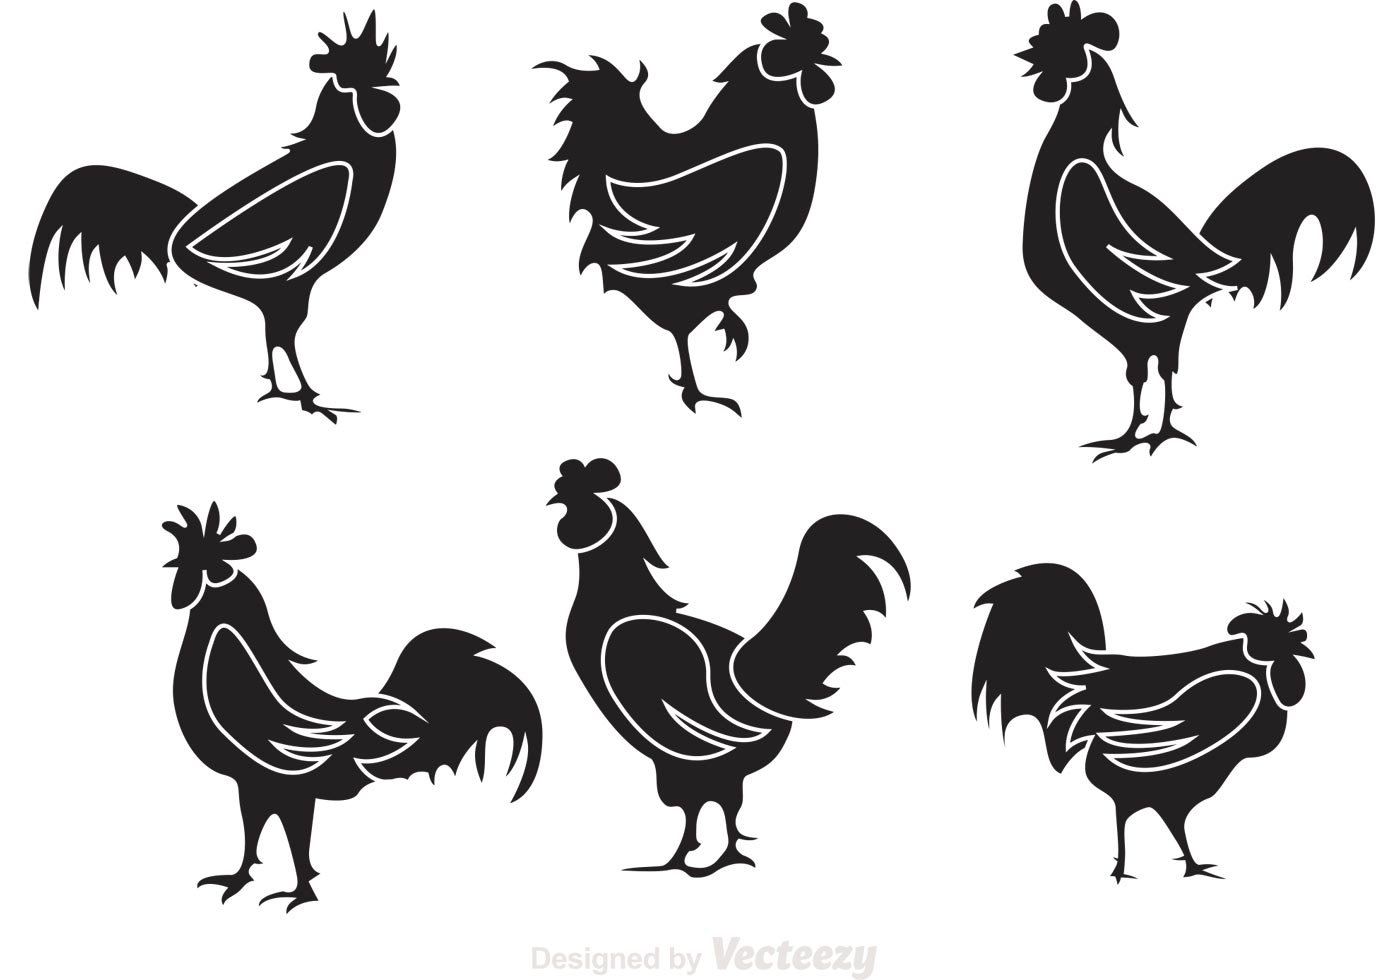 Chicken Svg: Black Rooster Silhouette Vectors